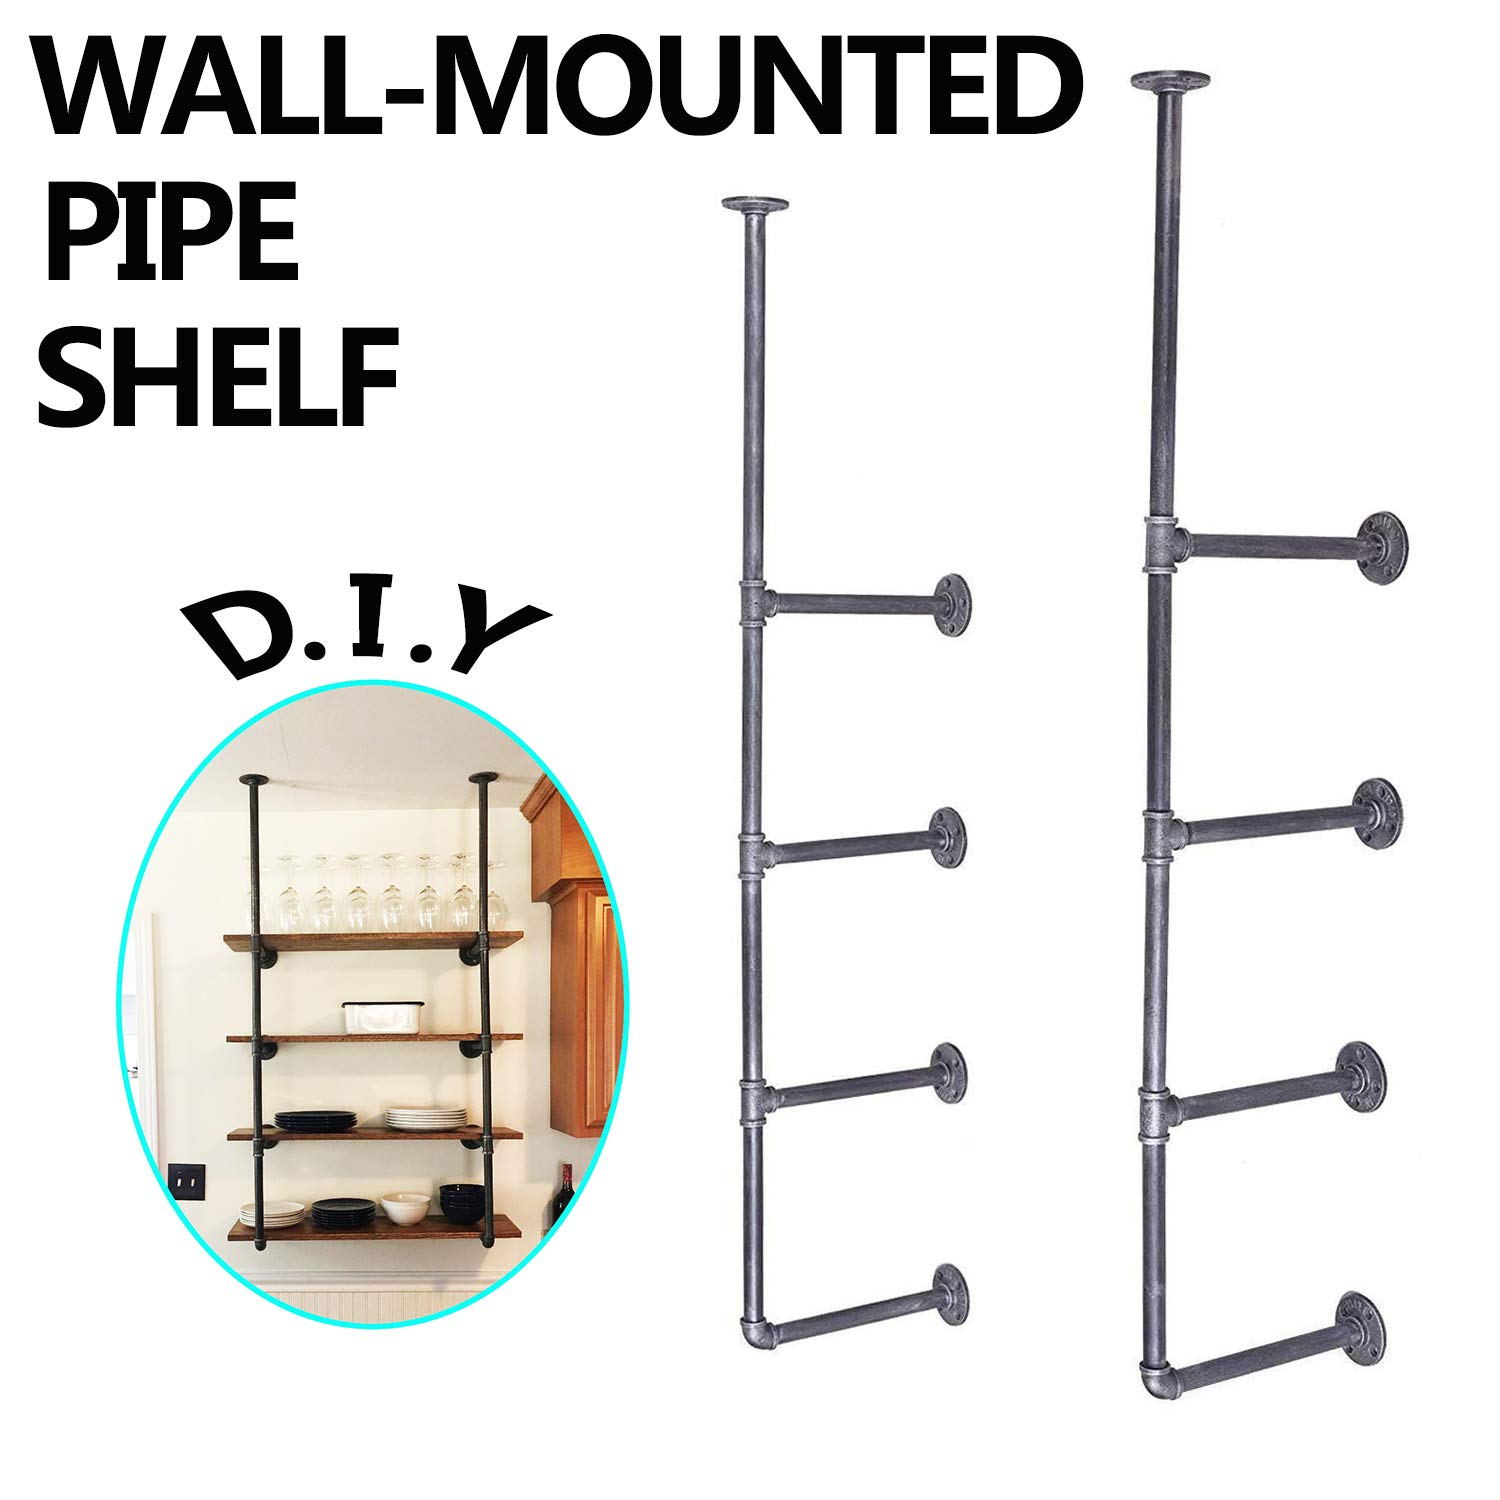 MY Furniture Industrial Retro Wall Mount Iron Pipe Shelf Rustic 4 Tiers DIY Home Improvement Bookshelves (2 pcs)